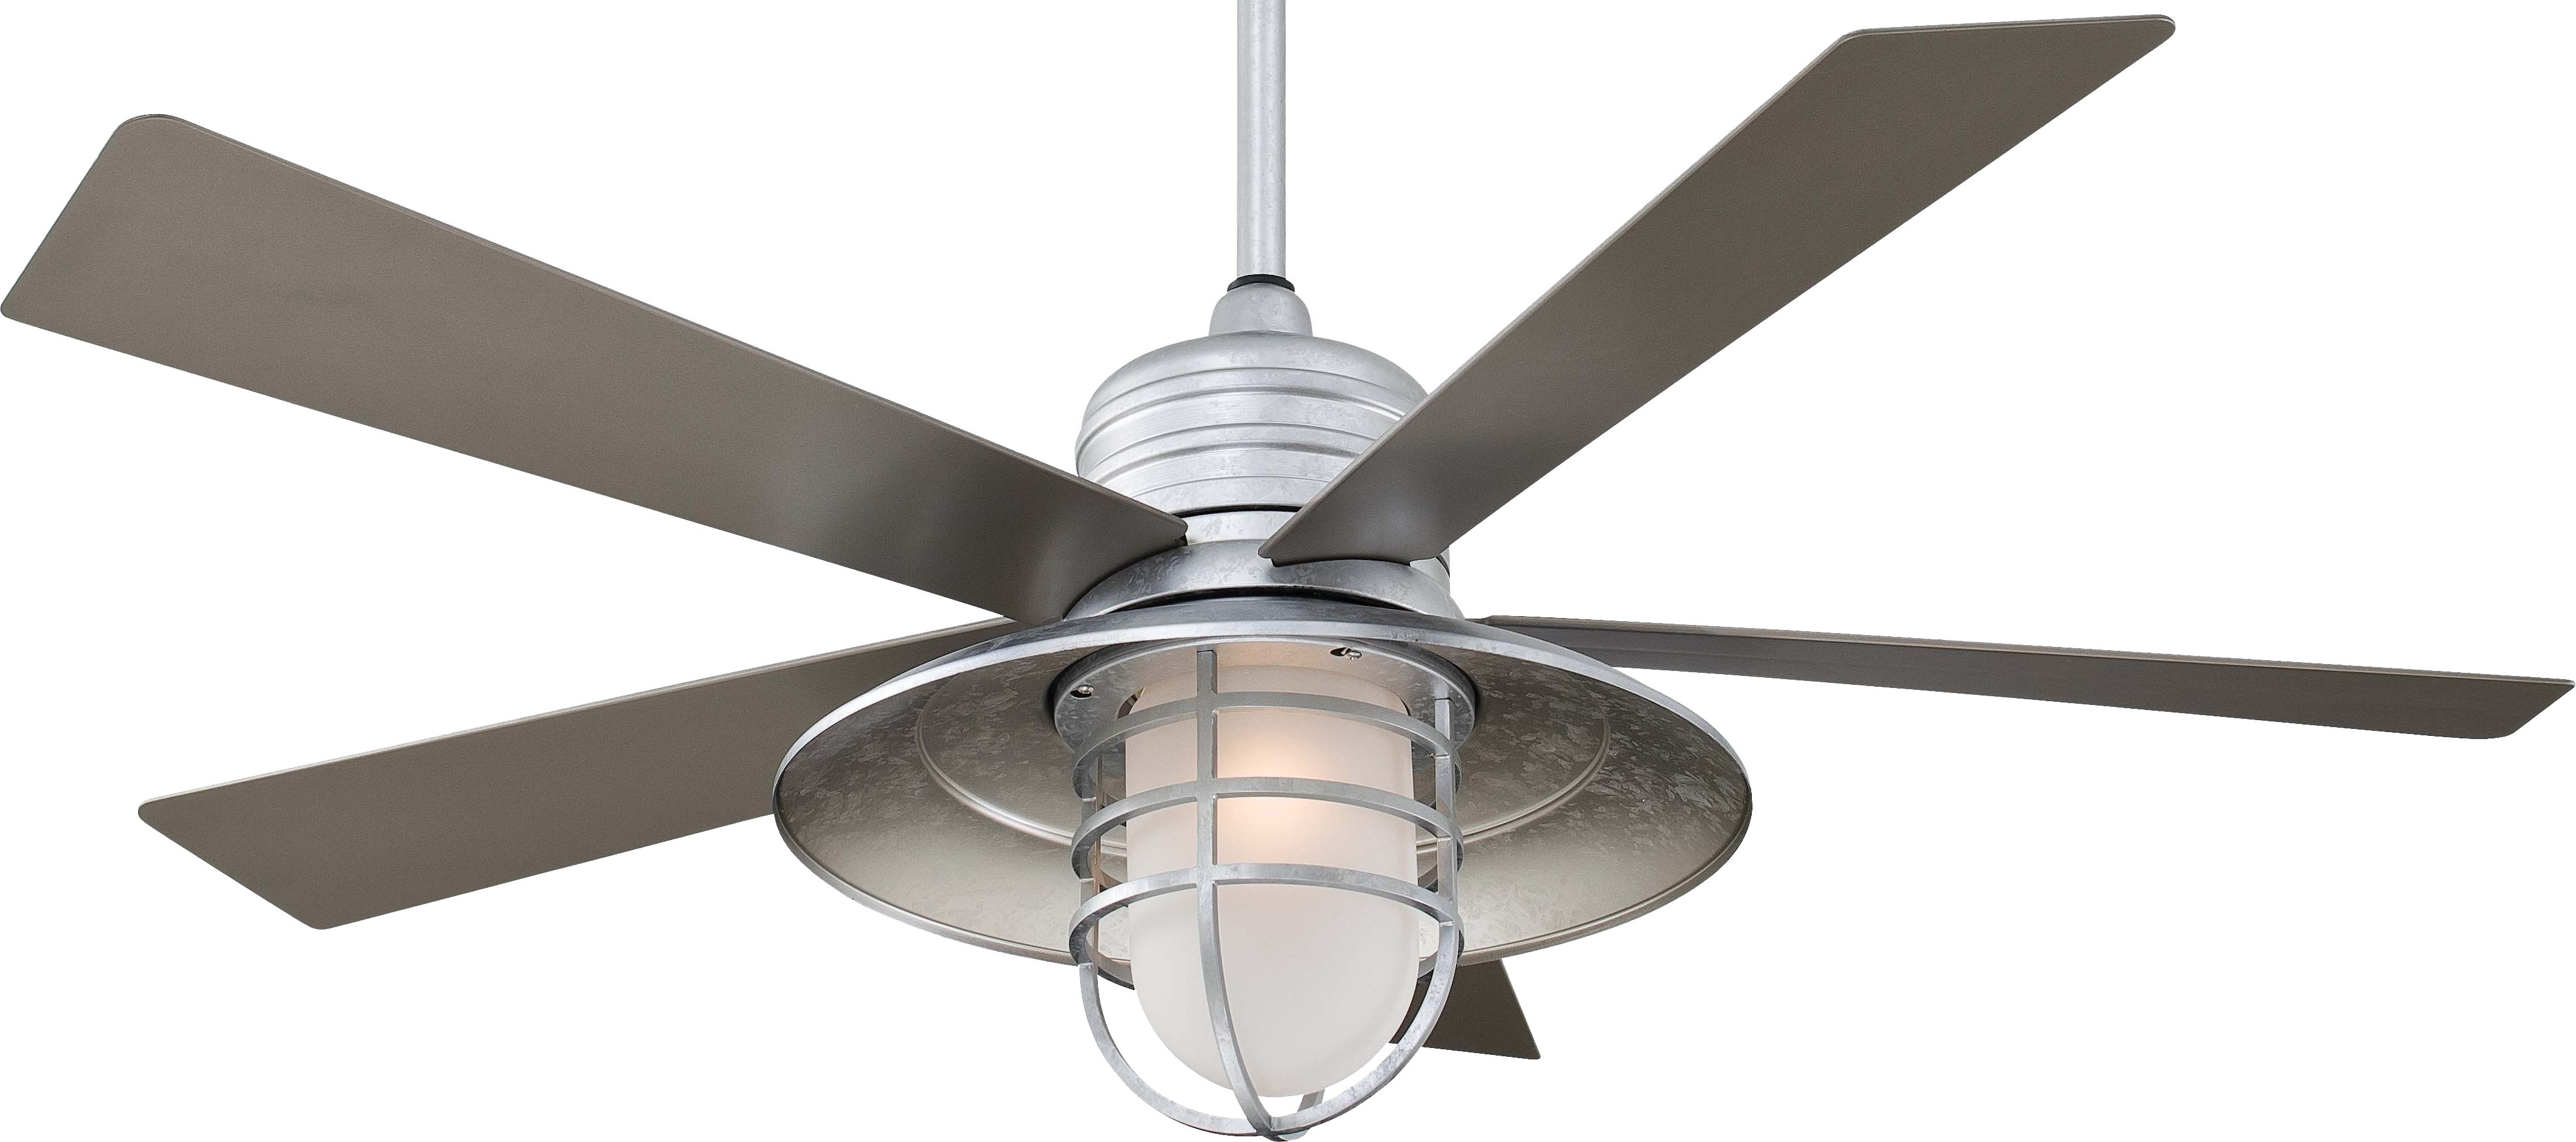 Famous Wet Rated Ceiling Fans With Light Outstanding Outdoor Ceiling Fan In Wet Rated Outdoor Ceiling Fans With Light (View 7 of 20)